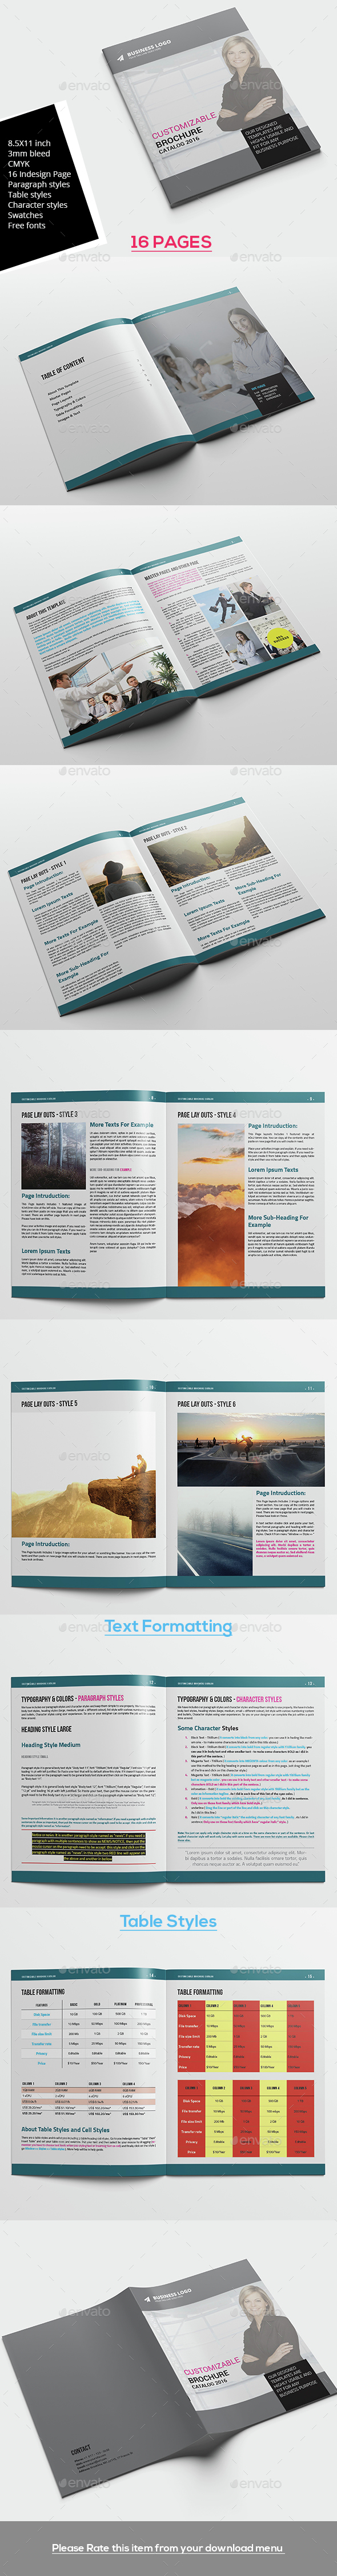 Brochure Template V2 - Corporate Brochures